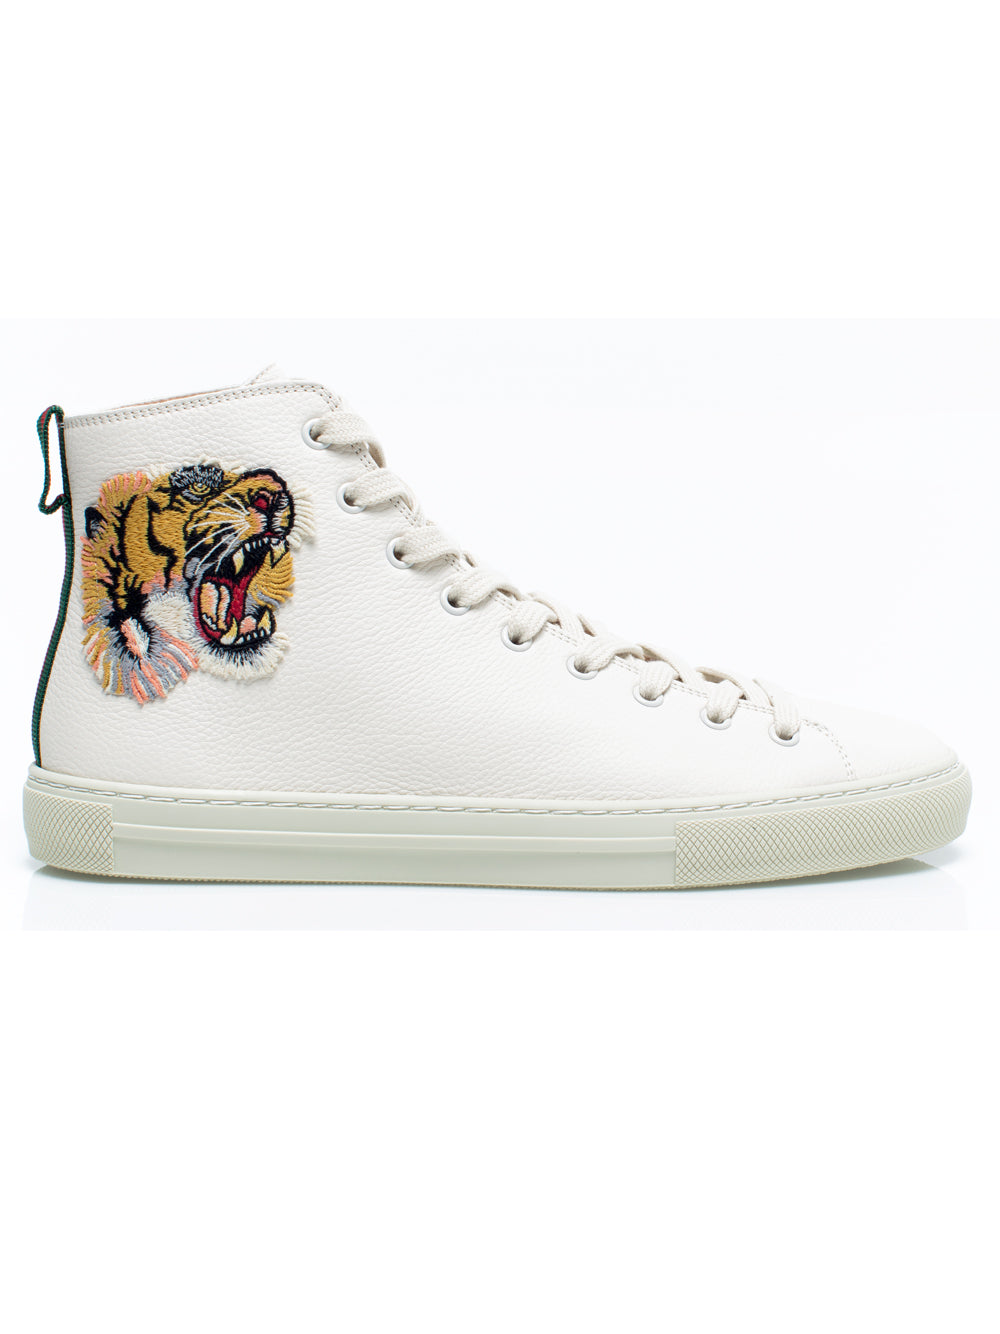 70f7c74ea83 White Leather High Top Embroidered Sneakers – KultBoutique